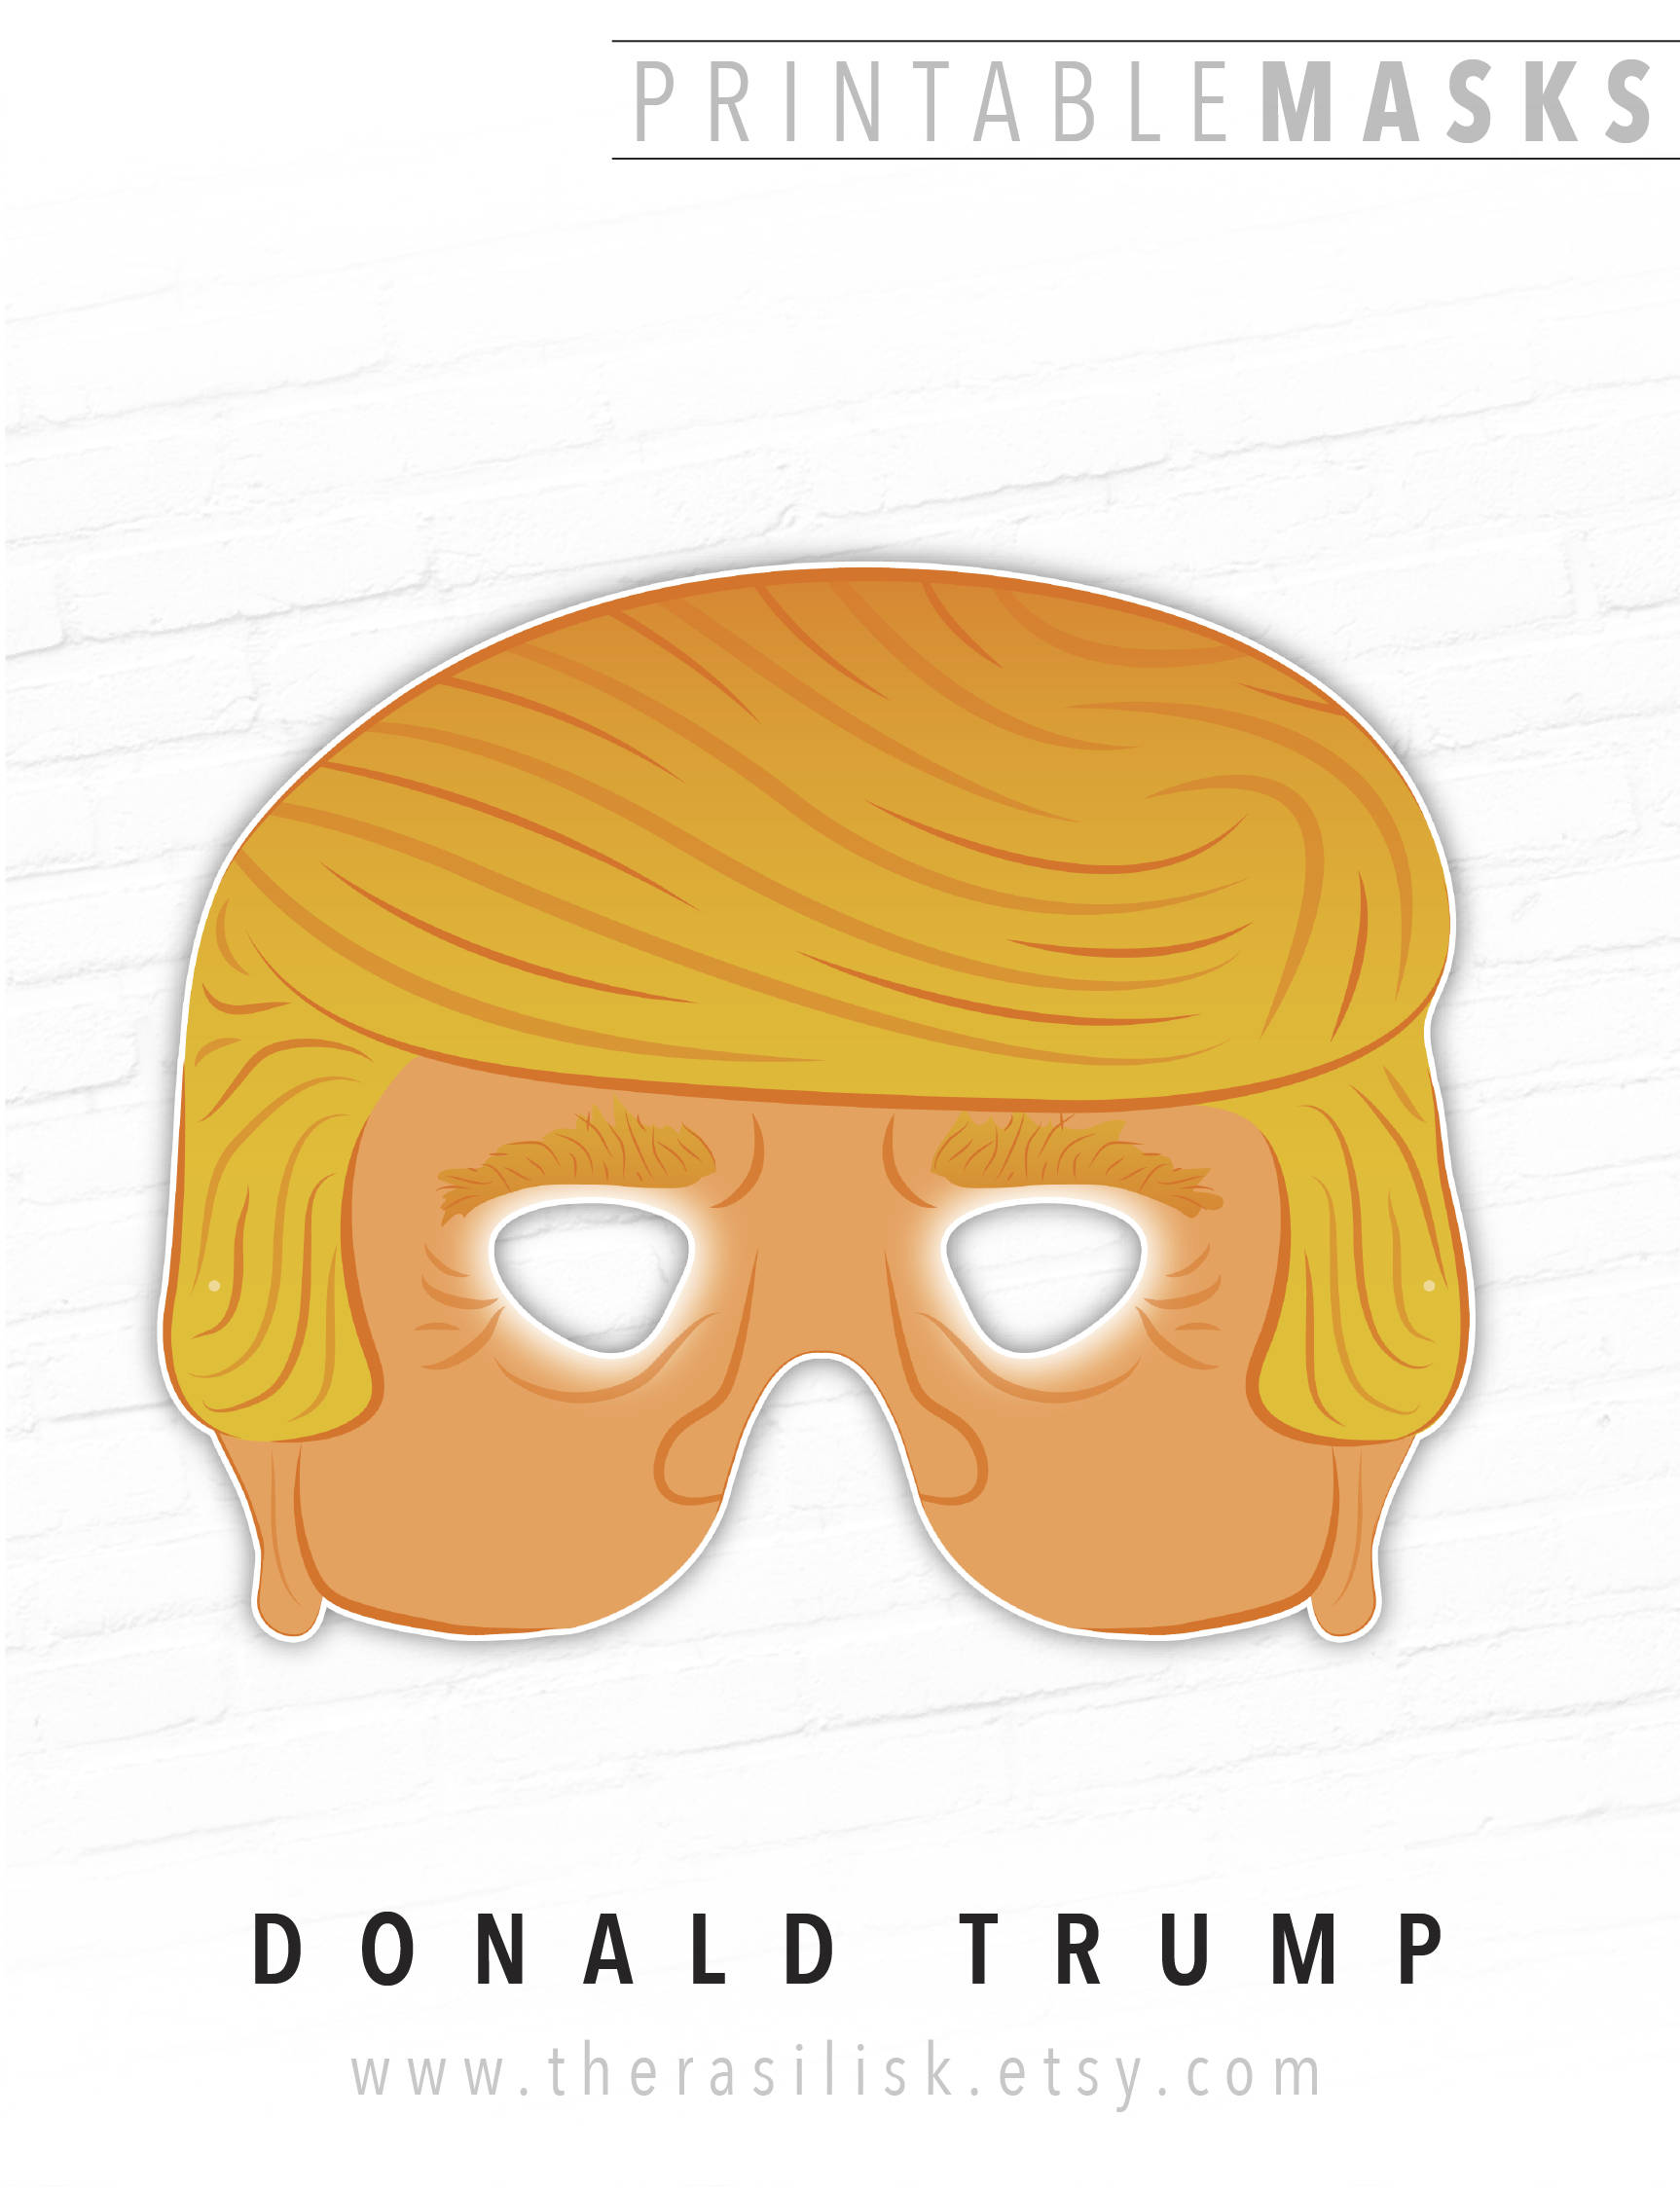 photo about Donald Trump Mask Printable named Donald Trump Printable Halloween Mask, Printable President of the United Claims Mask, Trump Mask, Paper Mask, Intimidating Masks, Orange, Dress